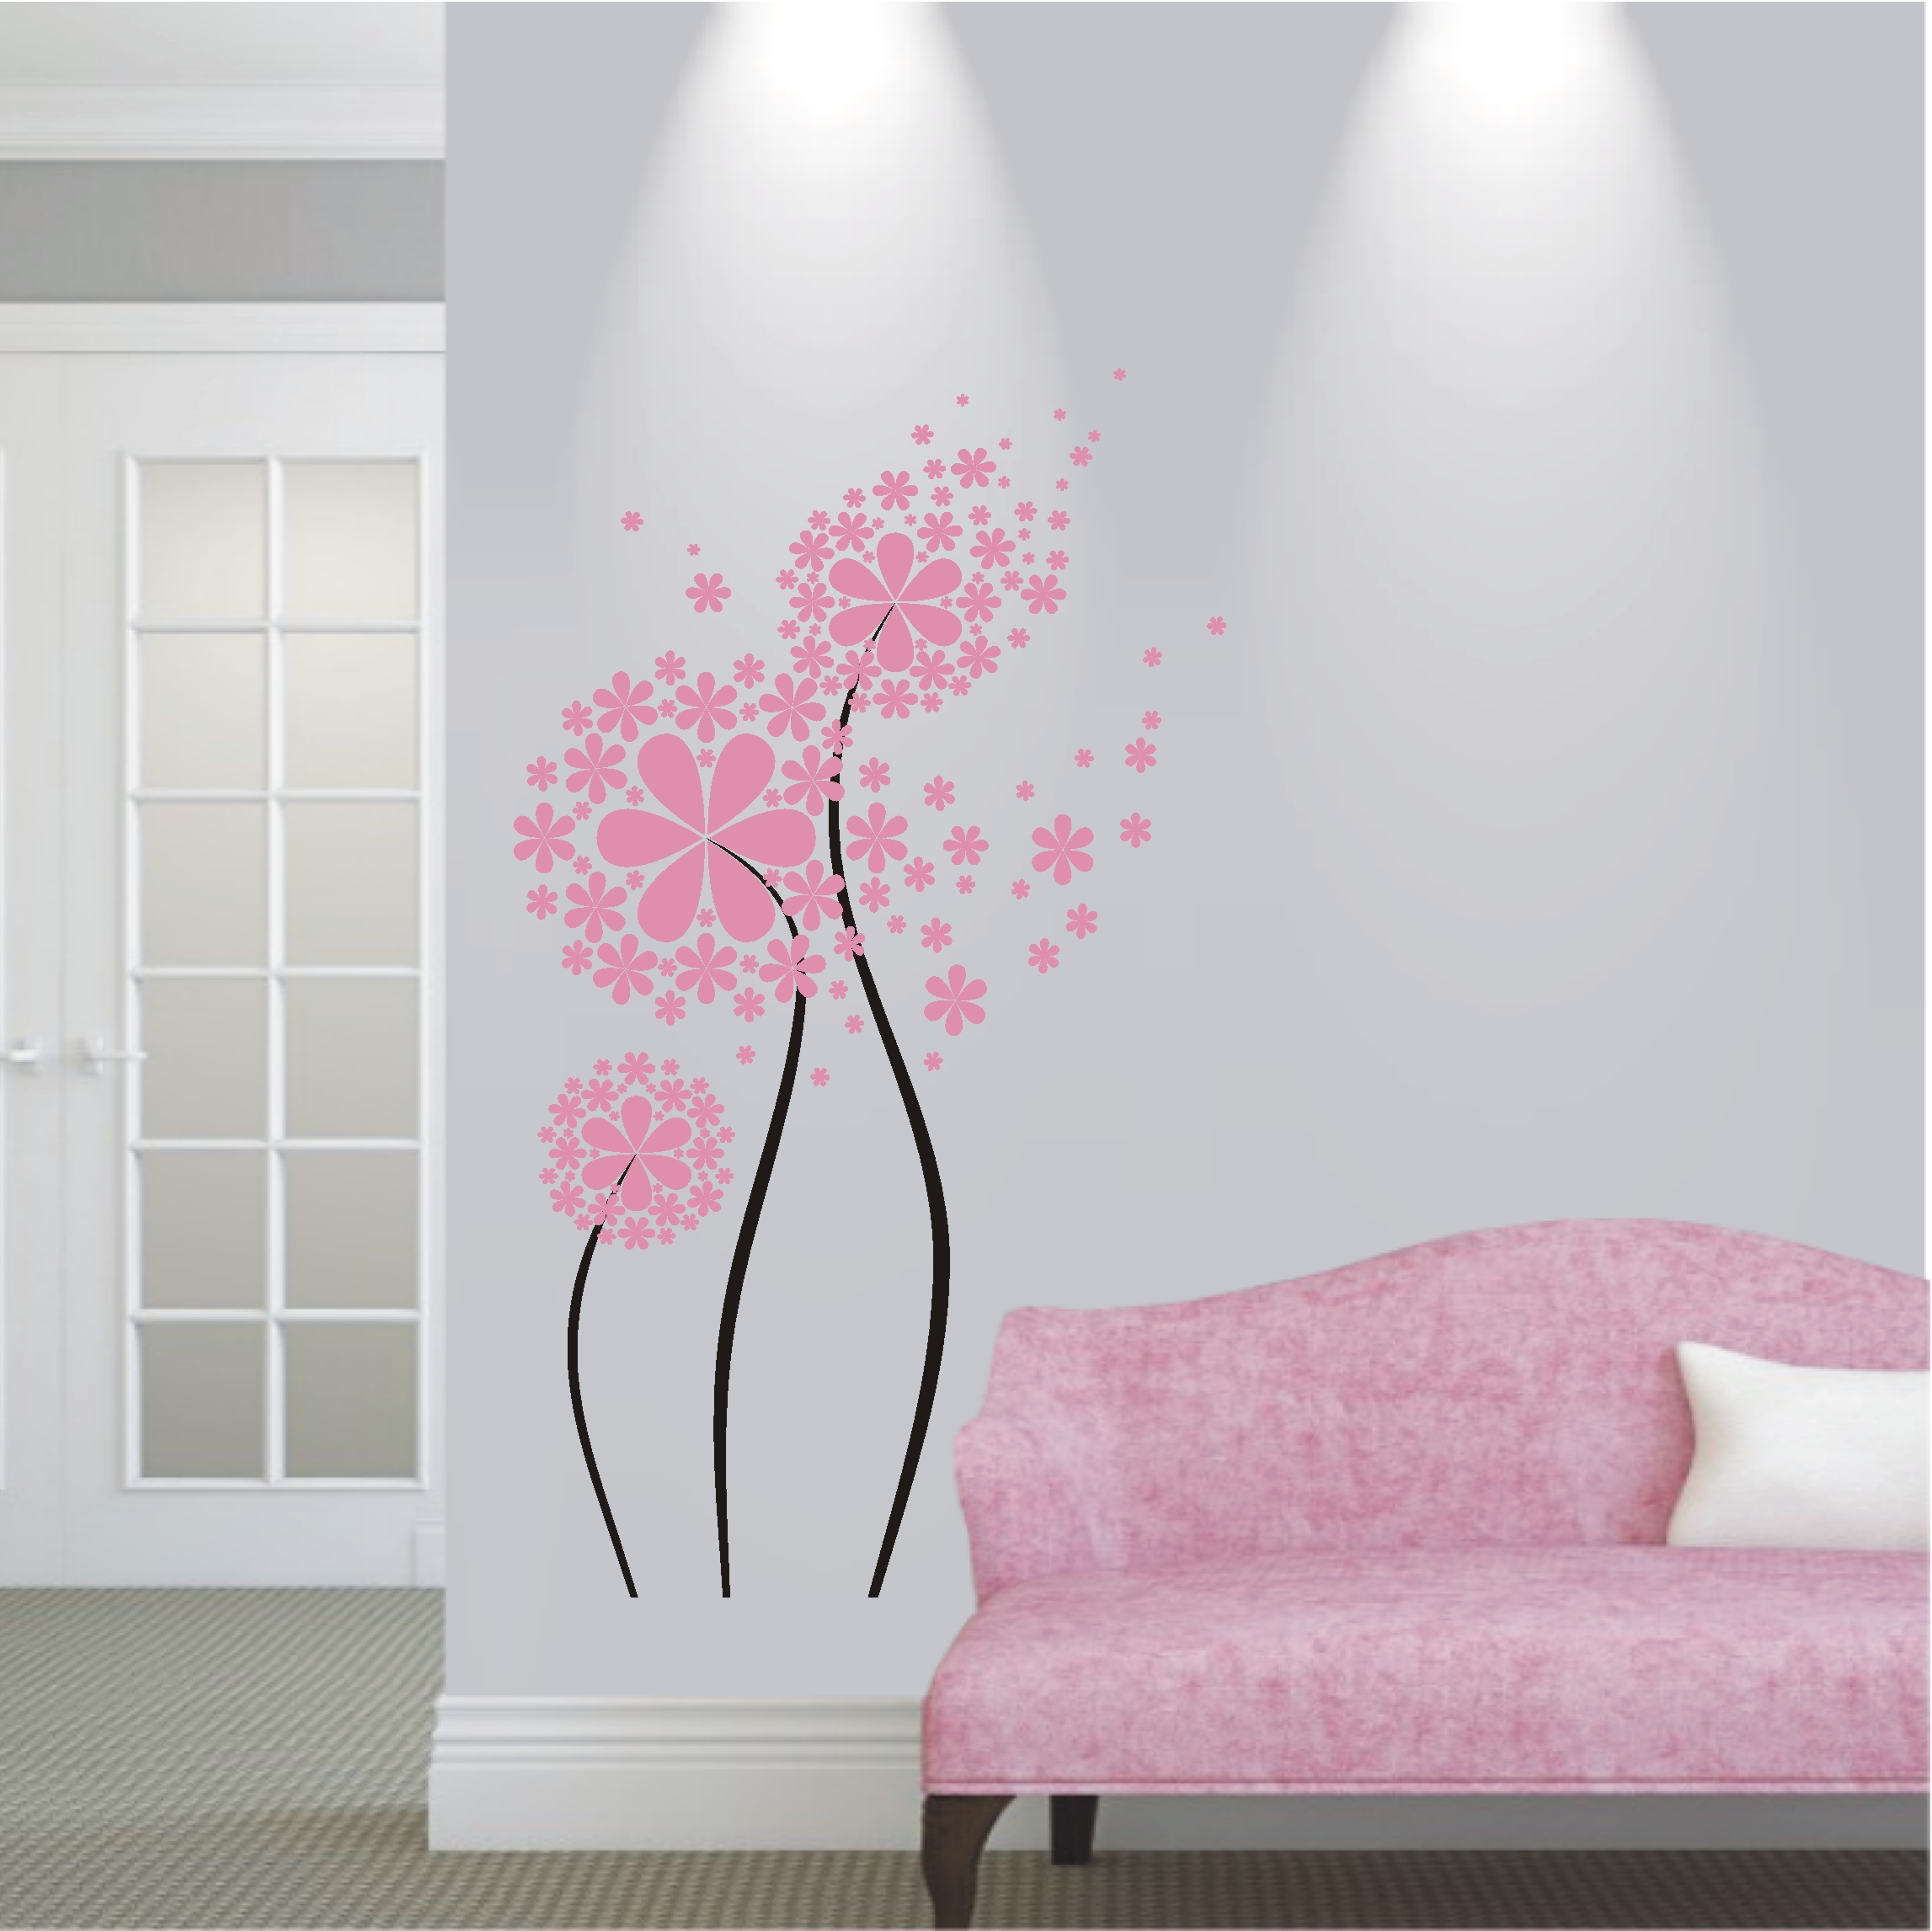 deko shop wandtattoo pusteblume 2 farbig deko shop. Black Bedroom Furniture Sets. Home Design Ideas